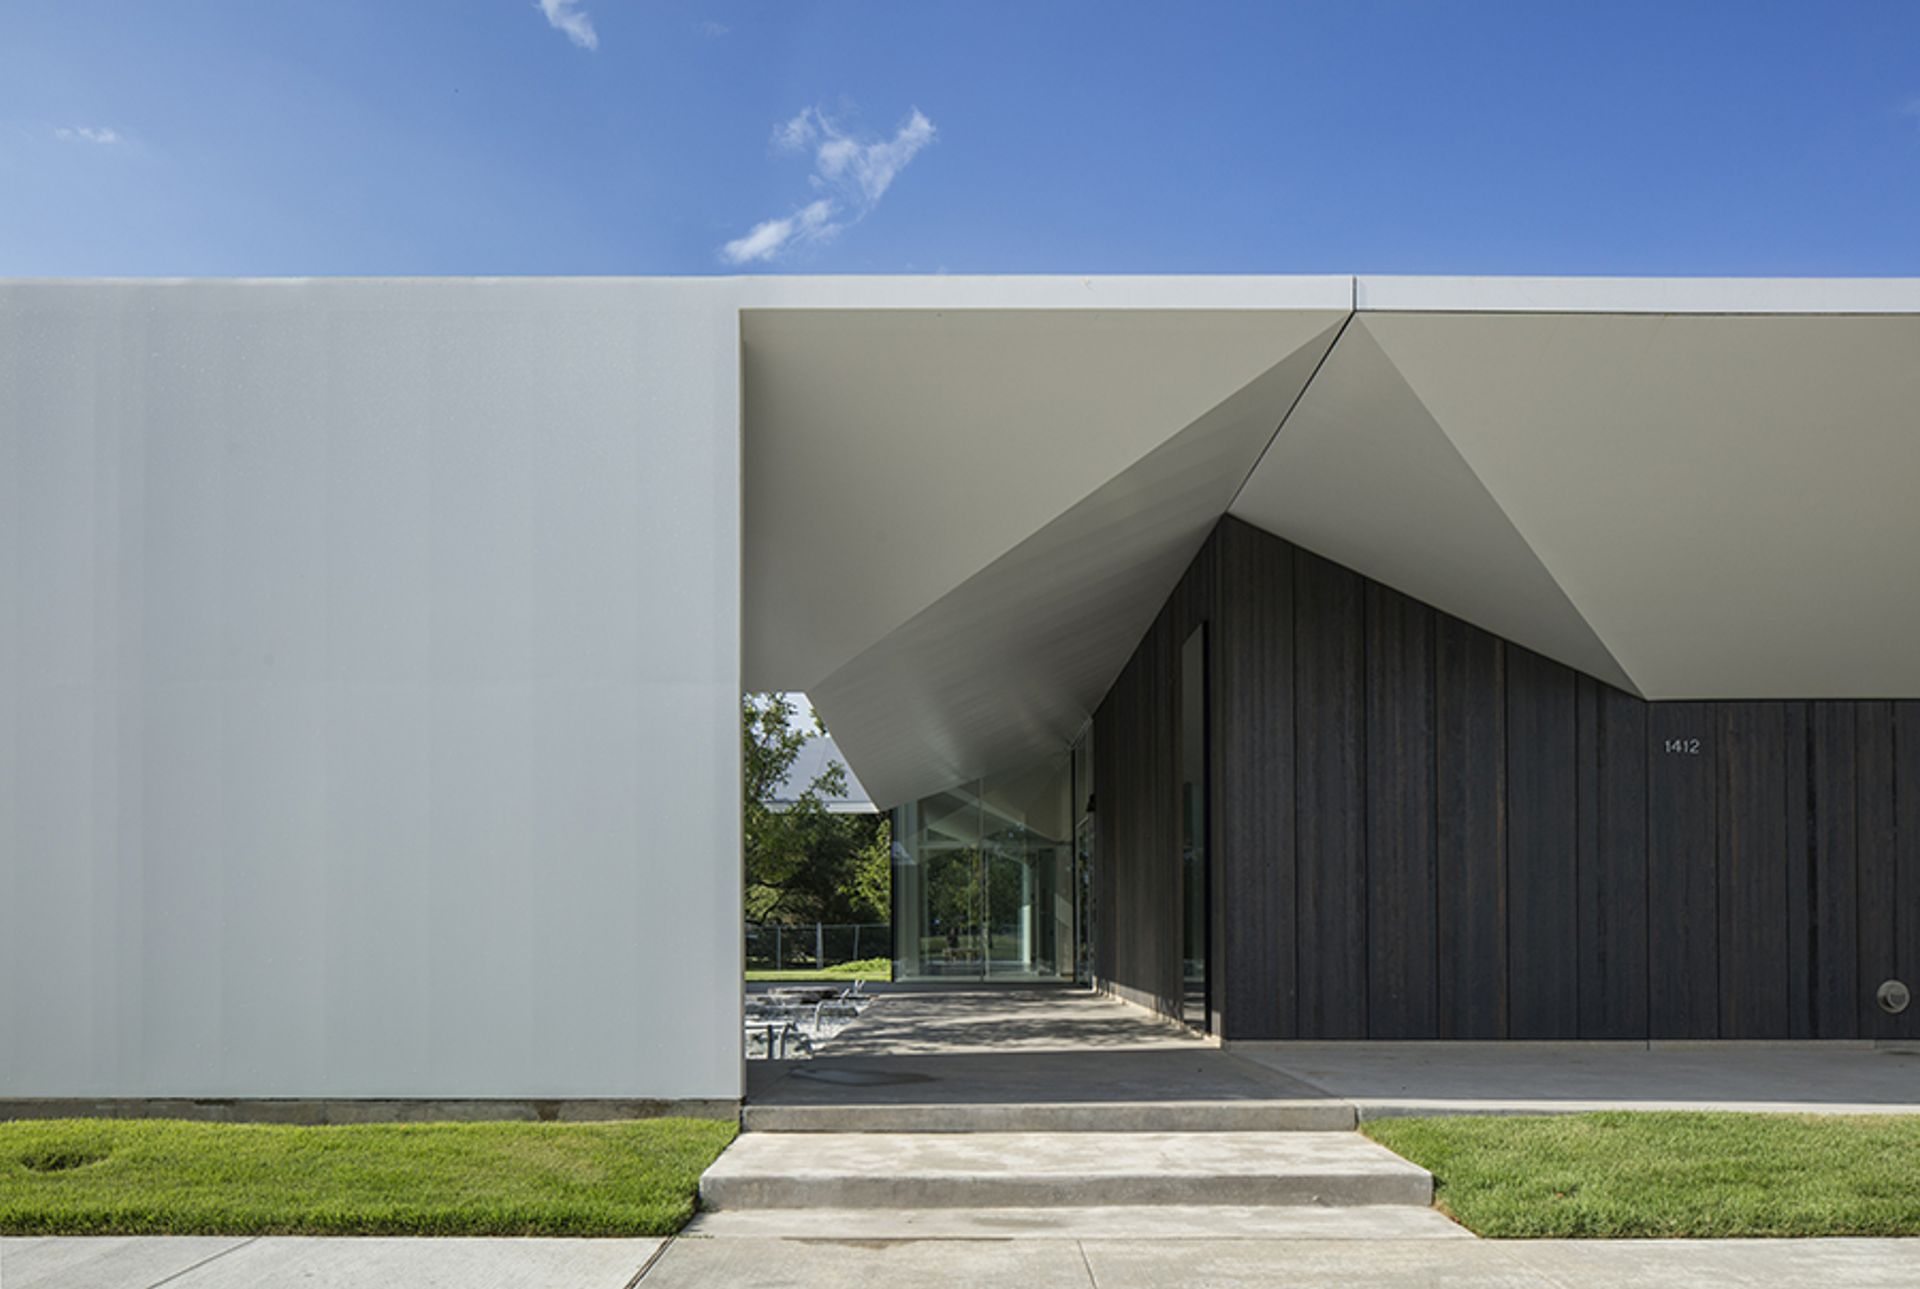 """The Menil Drawing Institute: """"You're supposed to feel like you're living with art"""" Photo: Richard Barnes"""